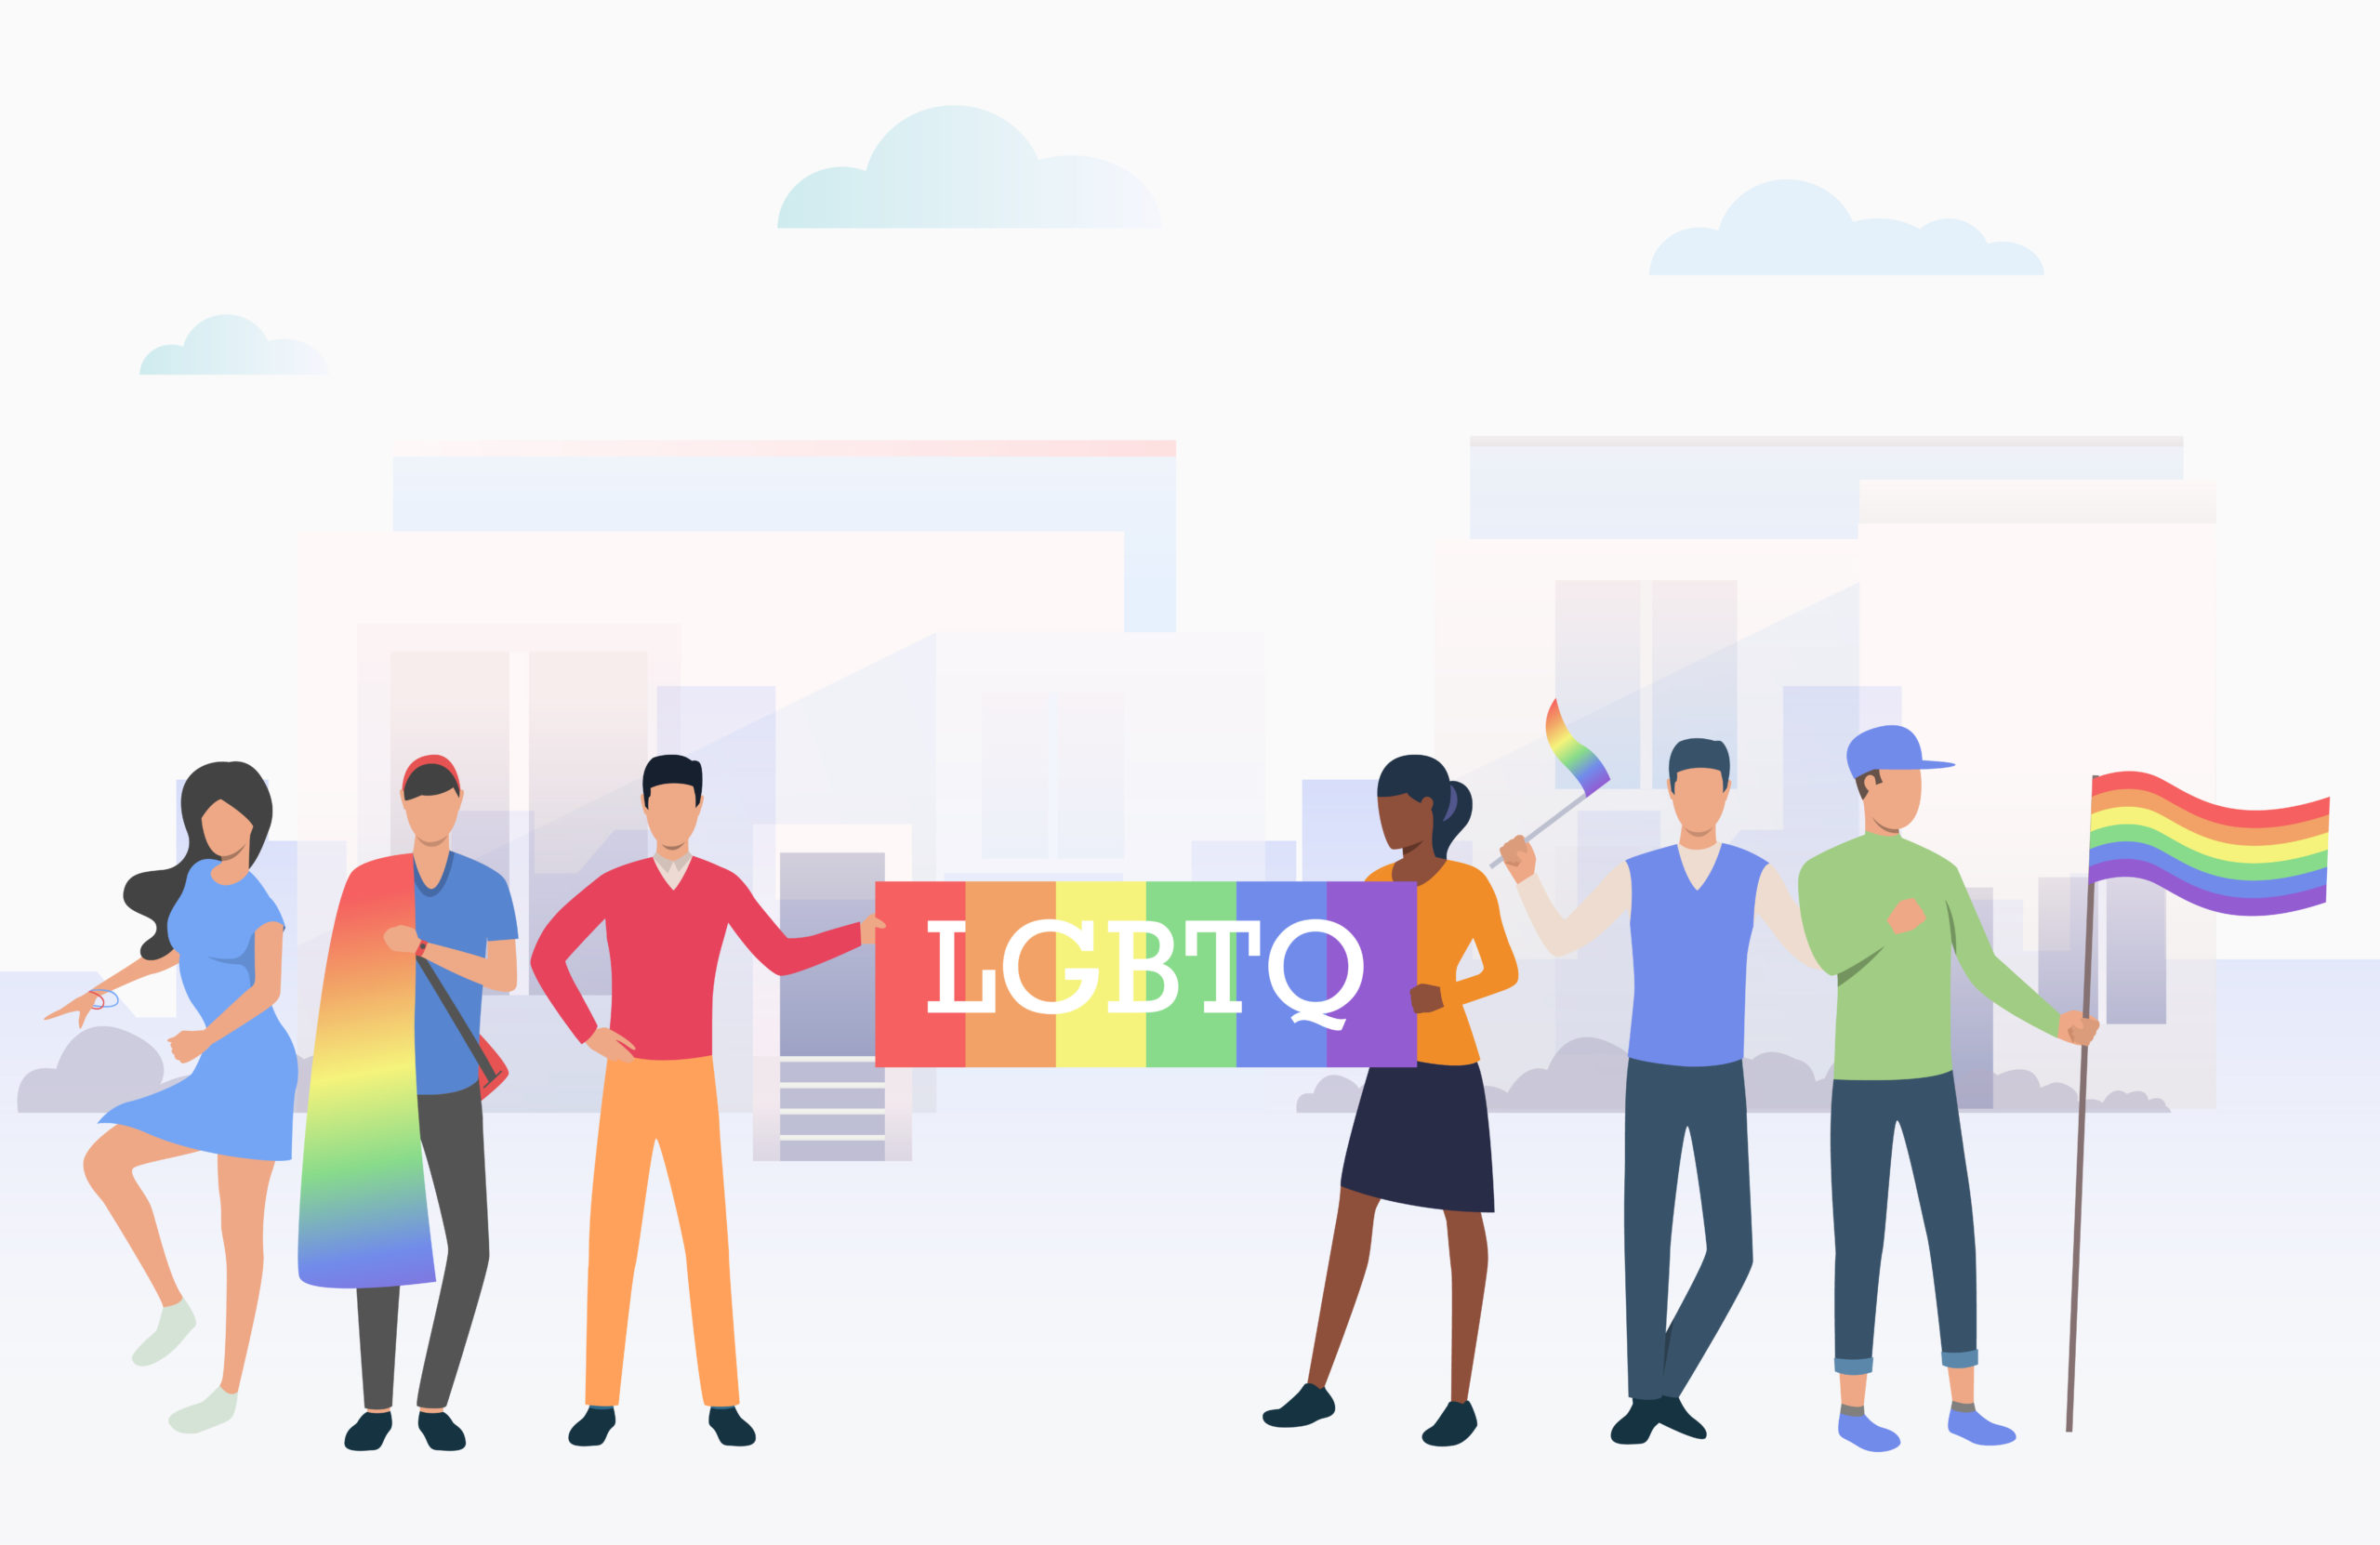 What does each letter in LGBTQ stand for?